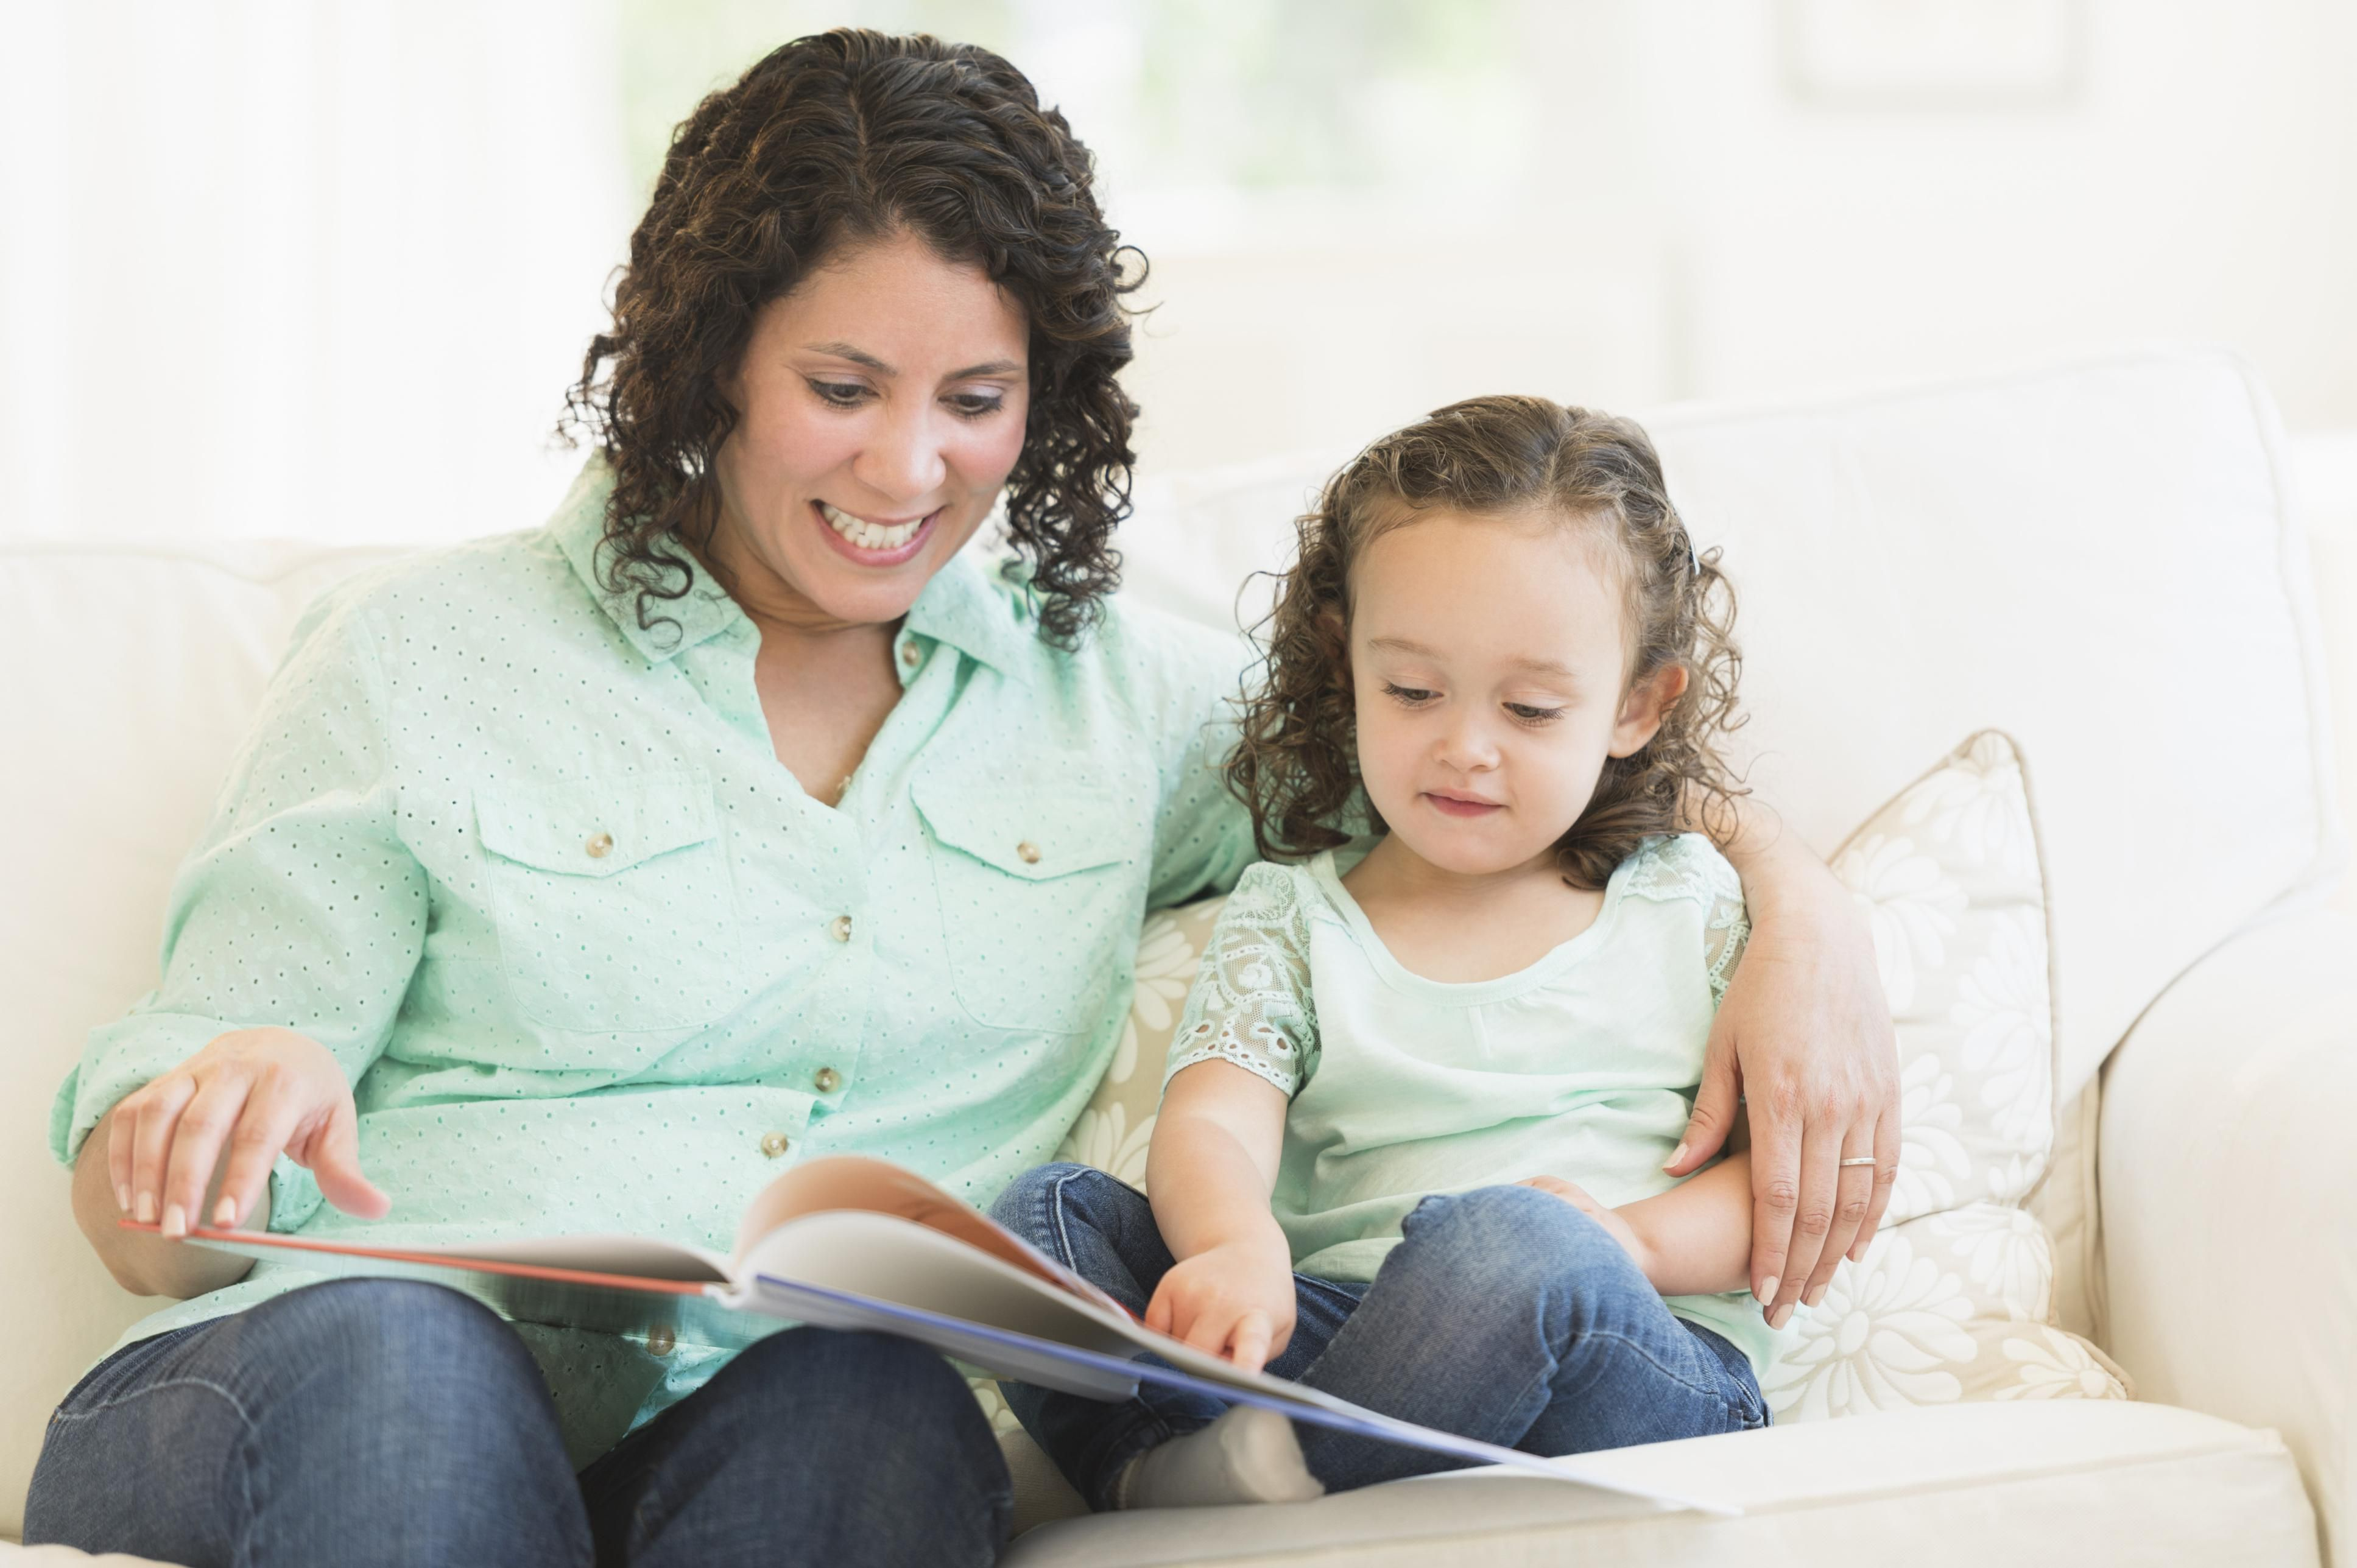 8 Fun Ways to Build a Child's Vocabulary